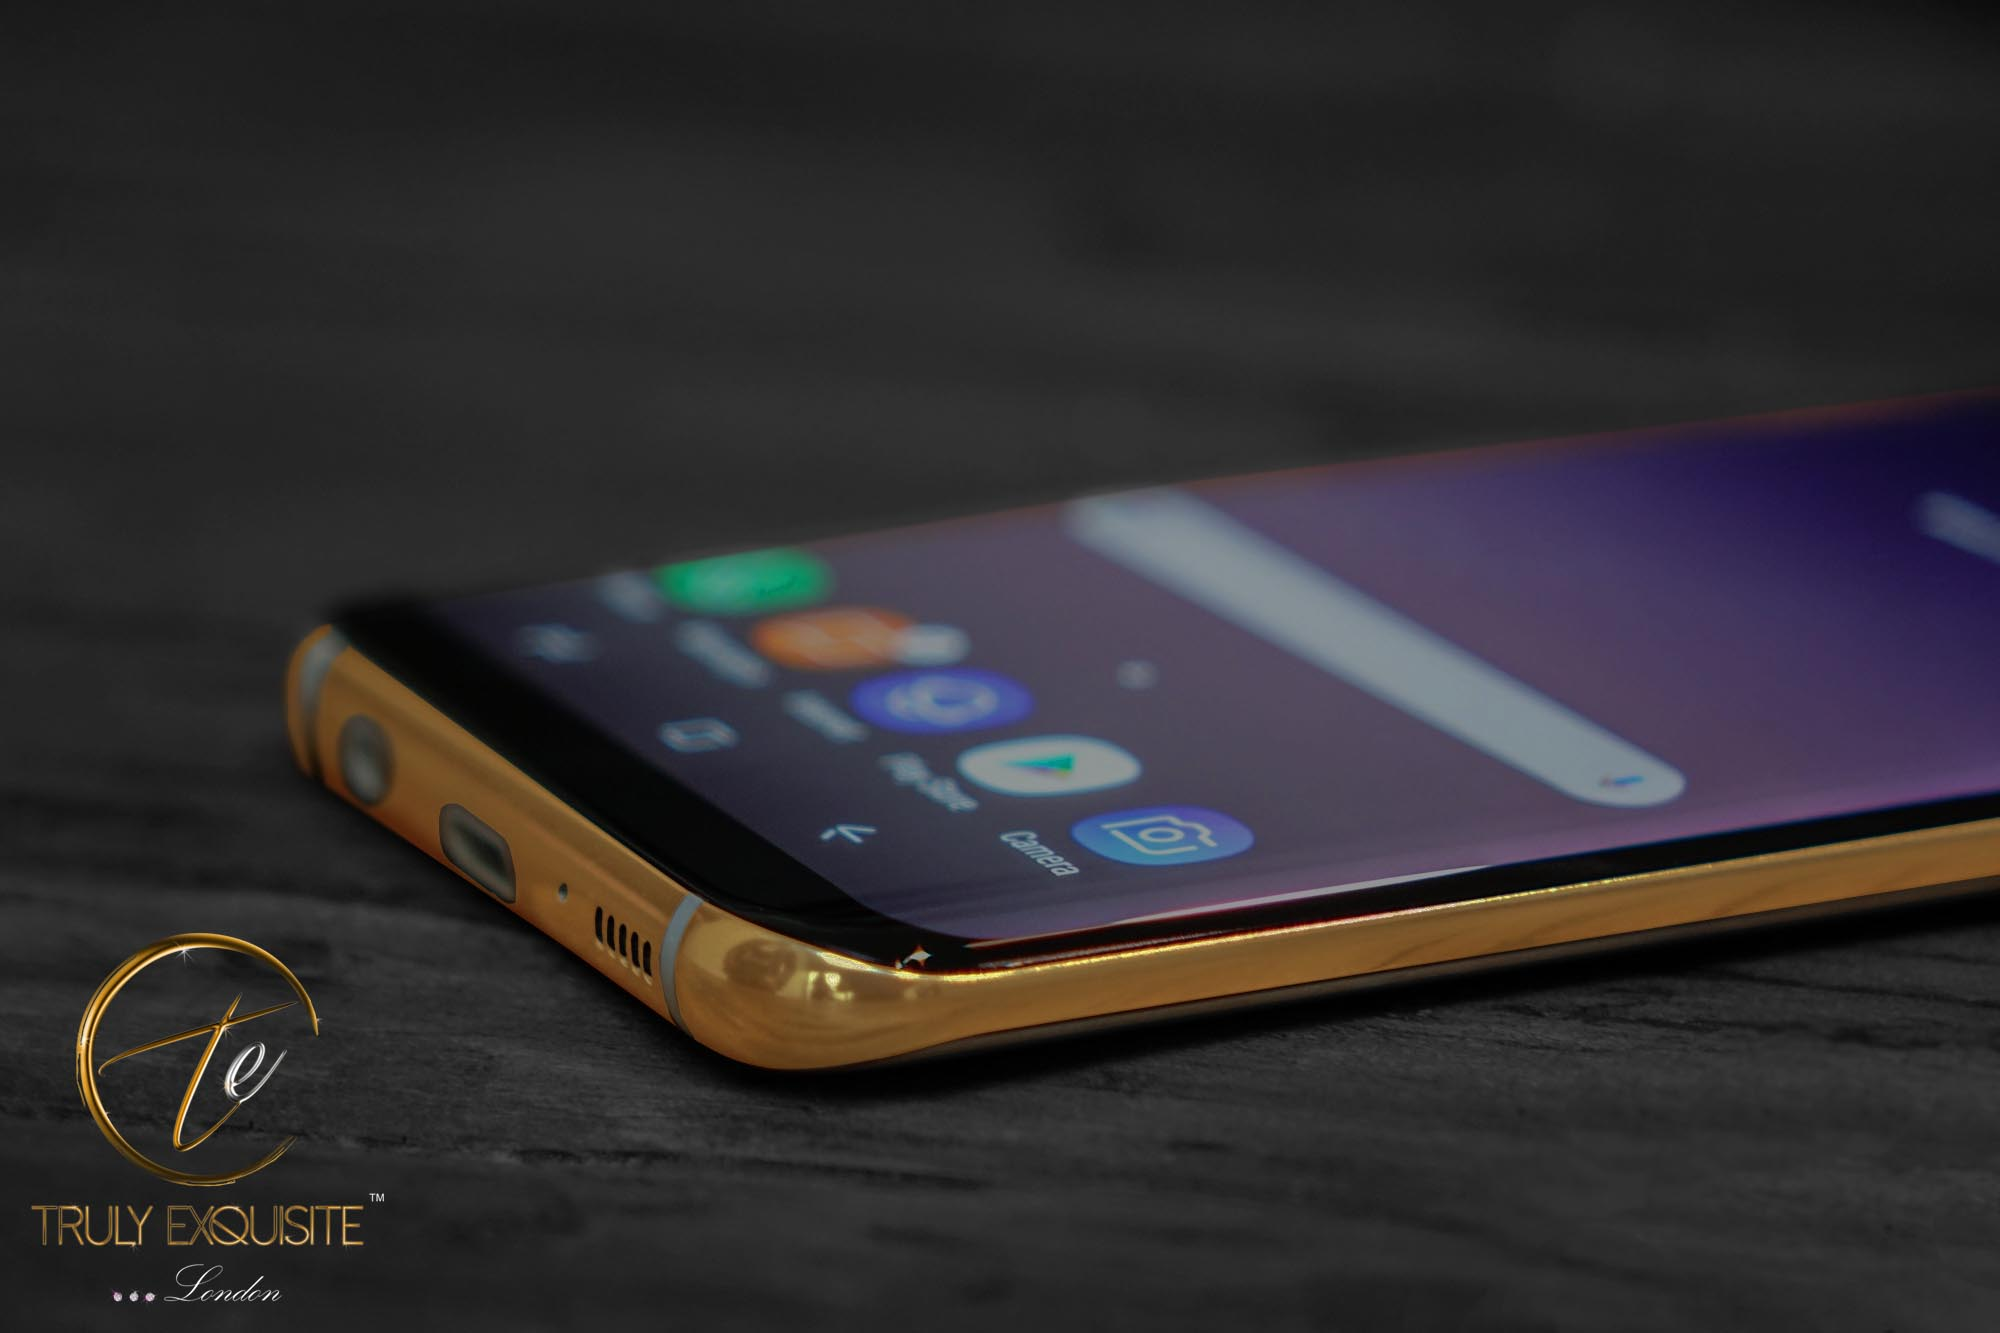 Most Expensive Cars >> Truly Exquisite introduces world's first Samsung Galaxy S8 and S8+ in 24K Gold and Platinum